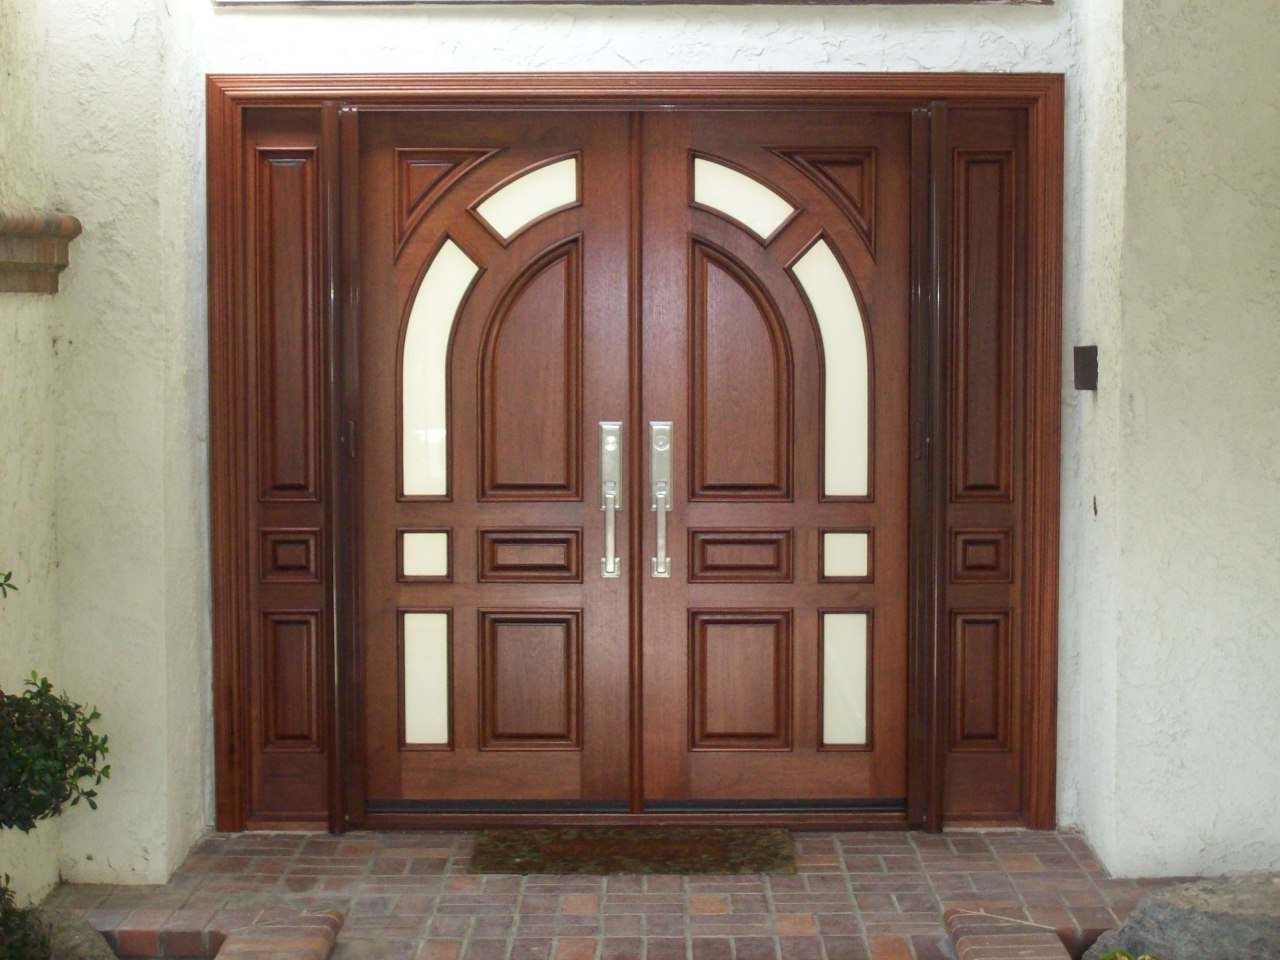 Pictures Of Homes With Double Entry Doors The Midwest Canine